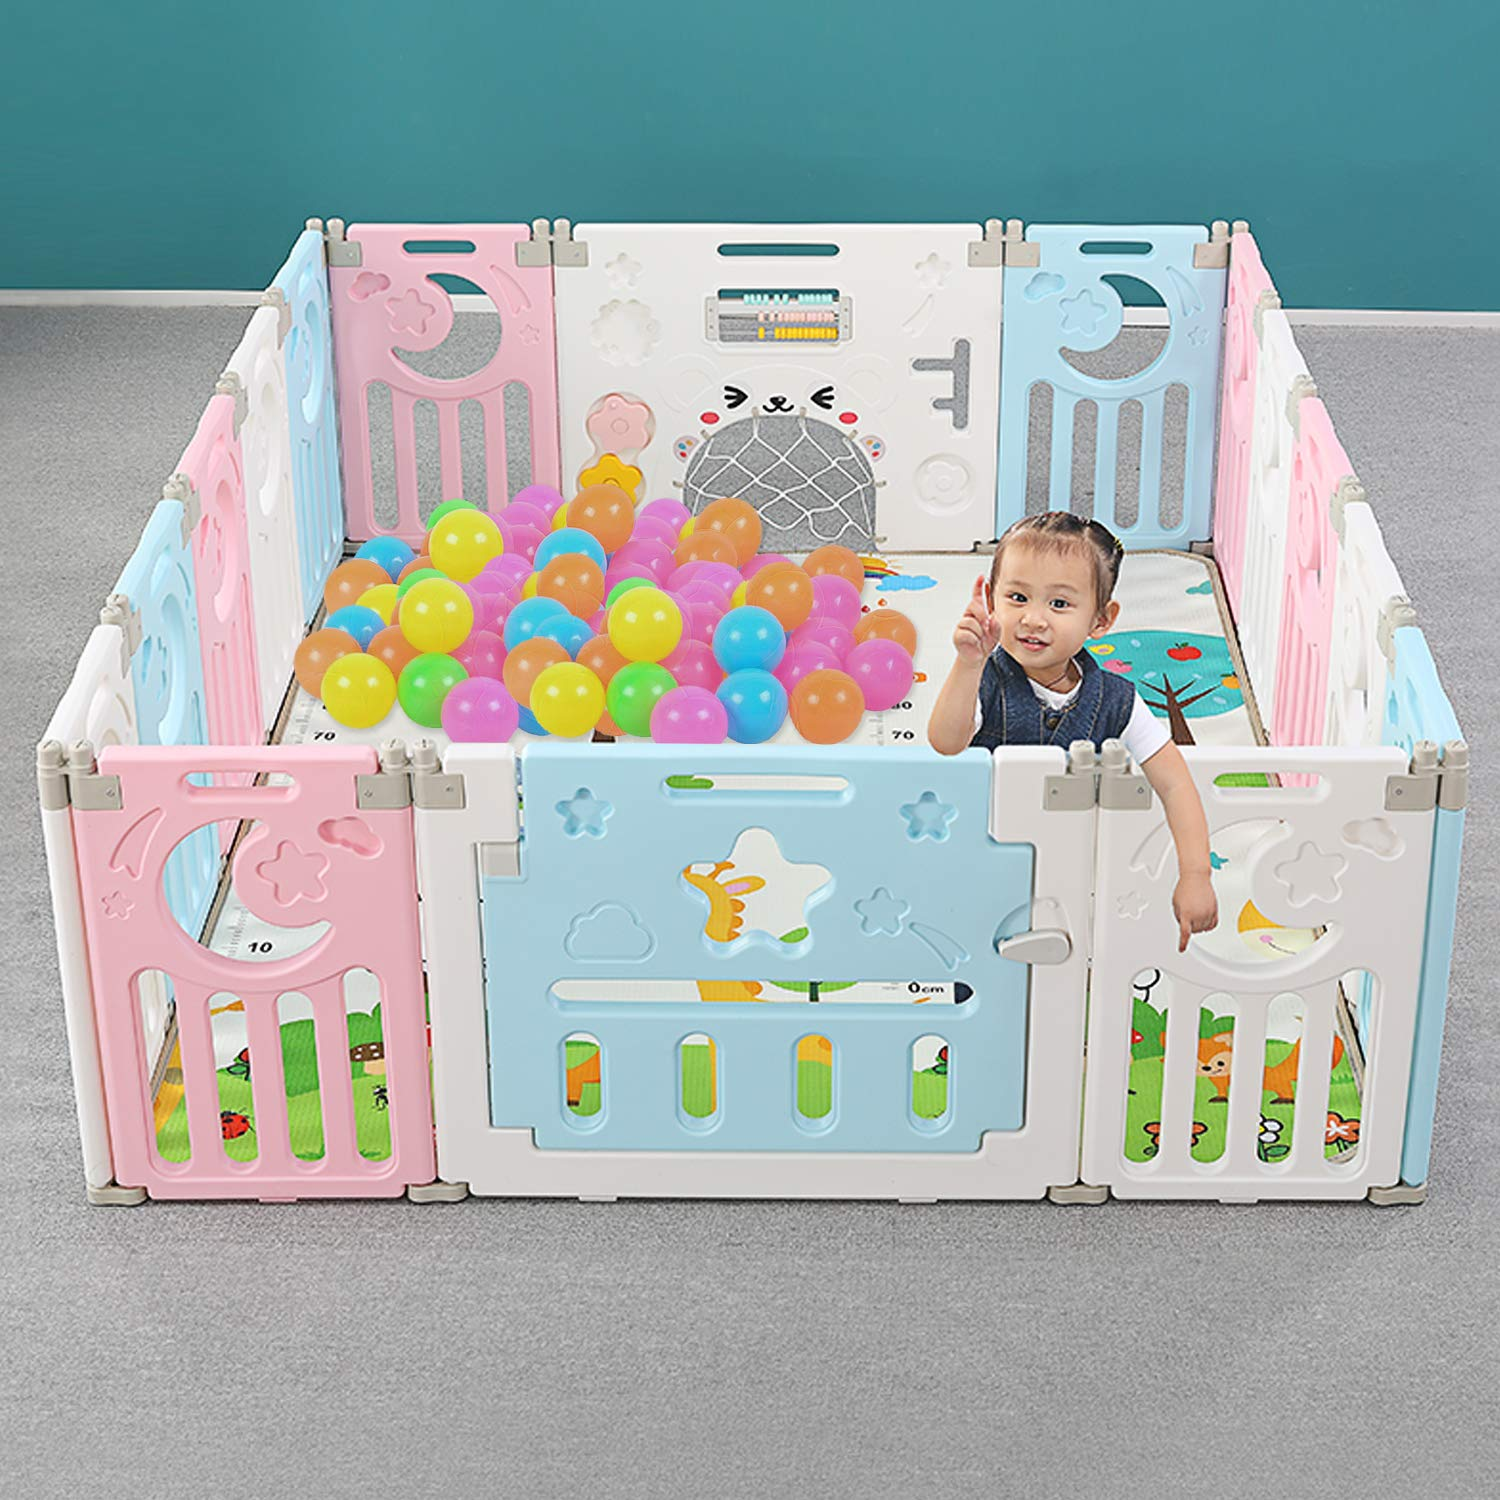 Foldable Baby Playpen for Kids Activity, Portable Playpen for Baby Safety, Baby Playpen Gate with Game Door, Multicolor Design Both for Girls and Boys 12+2 Panel (White-Pink-Blue)